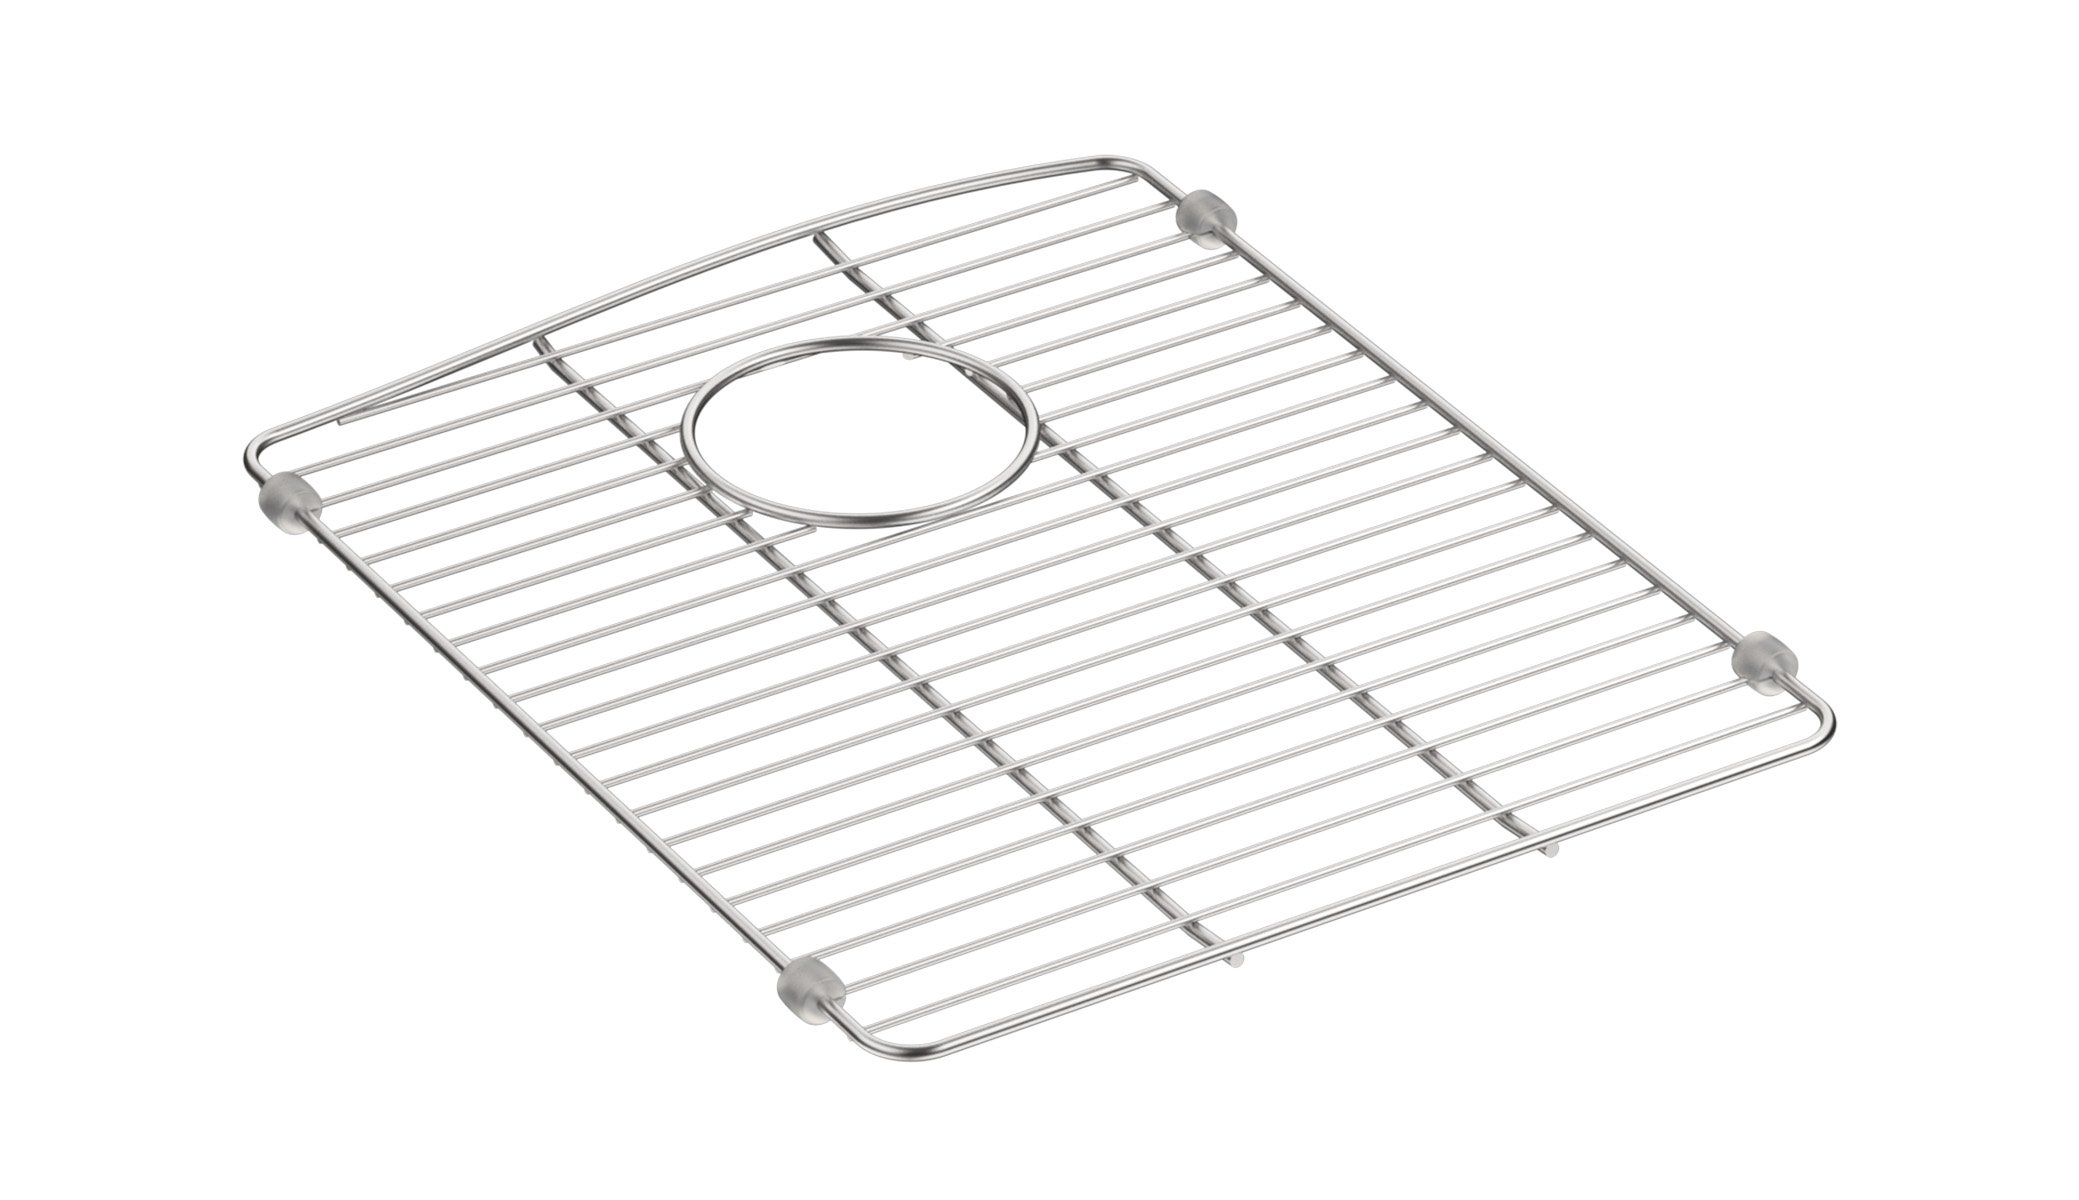 "Kohler 5186-ST Bottom Basin Rack (Right Side of Sink) Stainless steel Sink Rack, 13 5/8"" x 16 1/2"", For Right-Hand Bowl; Stainless steel by Kohler"